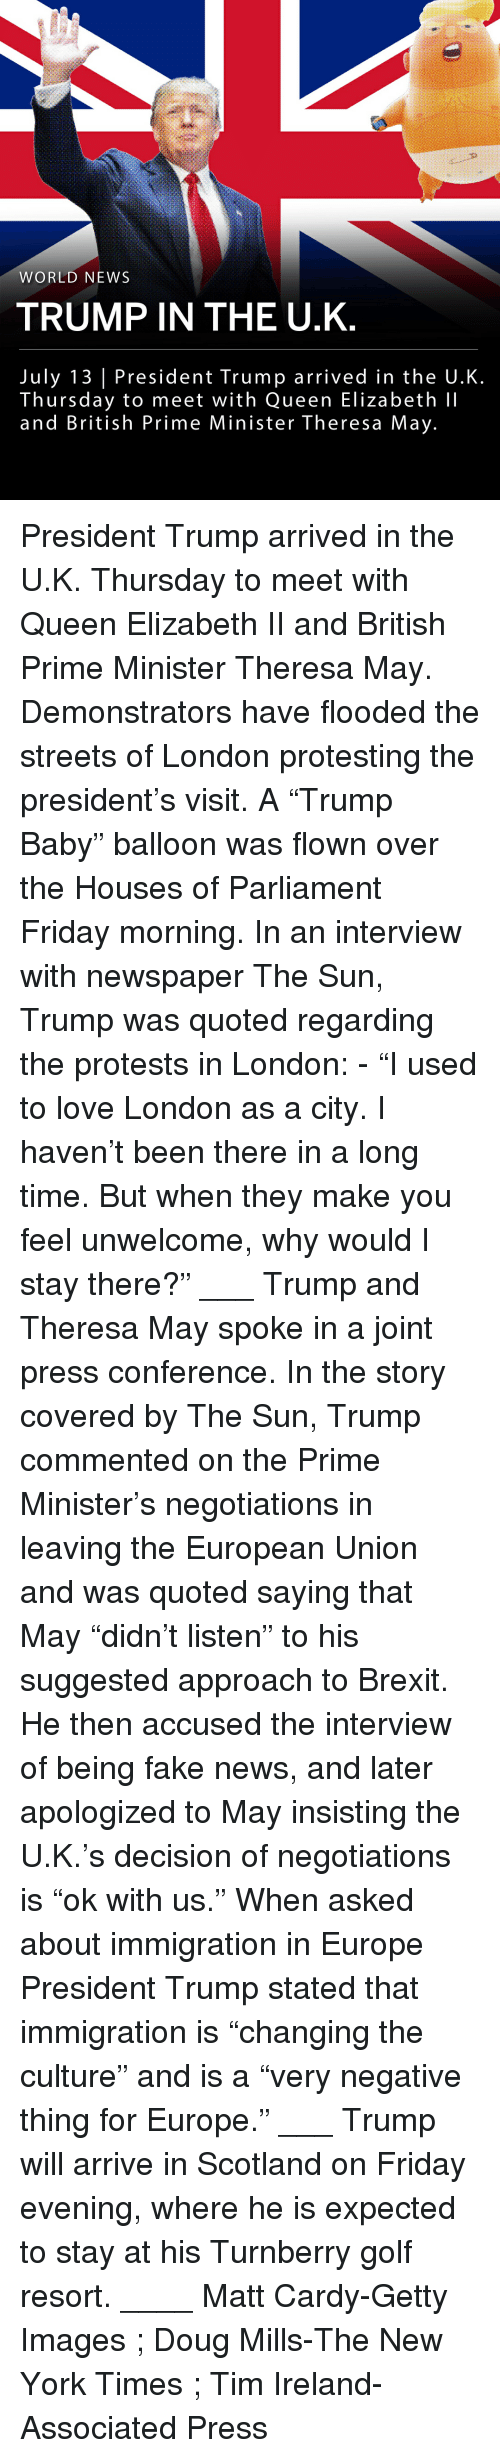 "Doug, Fake, and Friday: WORLD NEWS  TRUMP IN THE U.K  July 13 | President Trump arrived in the U.K.  Thursday to meet with Queen Elizabeth lI  and British Prime Minister Theresa May. President Trump arrived in the U.K. Thursday to meet with Queen Elizabeth II and British Prime Minister Theresa May. Demonstrators have flooded the streets of London protesting the president's visit. A ""Trump Baby"" balloon was flown over the Houses of Parliament Friday morning. In an interview with newspaper The Sun, Trump was quoted regarding the protests in London: - ""I used to love London as a city. I haven't been there in a long time. But when they make you feel unwelcome, why would I stay there?"" ___ Trump and Theresa May spoke in a joint press conference. In the story covered by The Sun, Trump commented on the Prime Minister's negotiations in leaving the European Union and was quoted saying that May ""didn't listen"" to his suggested approach to Brexit. He then accused the interview of being fake news, and later apologized to May insisting the U.K.'s decision of negotiations is ""ok with us."" When asked about immigration in Europe President Trump stated that immigration is ""changing the culture"" and is a ""very negative thing for Europe."" ___ Trump will arrive in Scotland on Friday evening, where he is expected to stay at his Turnberry golf resort. ____ Matt Cardy-Getty Images ; Doug Mills-The New York Times ; Tim Ireland-Associated Press"